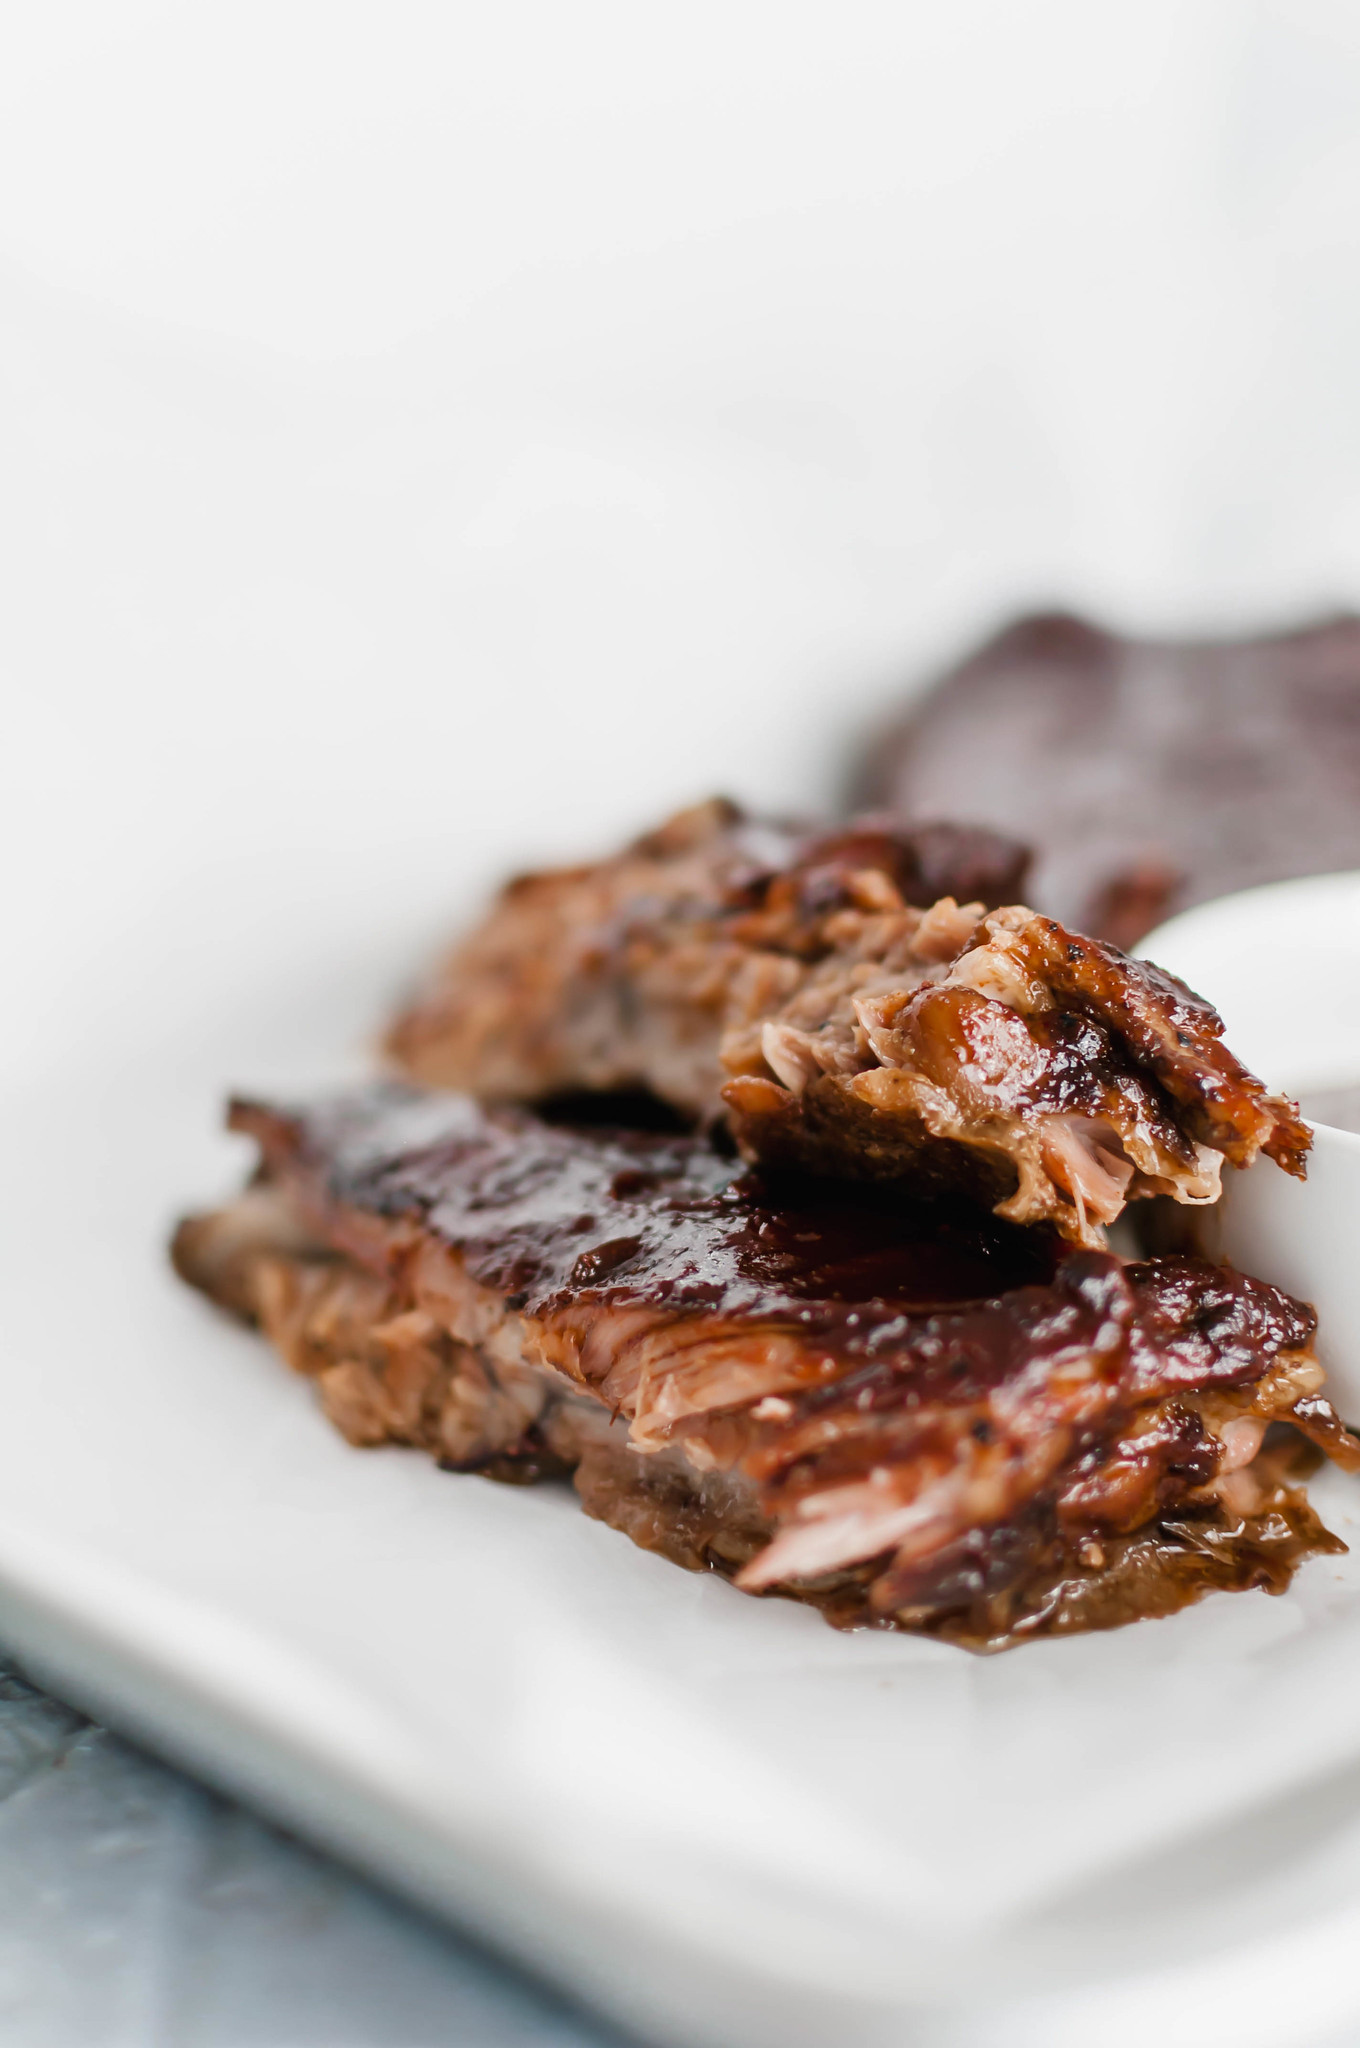 These Oven Baked Ribs are the ultimate in comfort. So simple and unbelievably tender. Rubbed with a delicious, rich coffee rub, baked then slathered in bbq sauce.